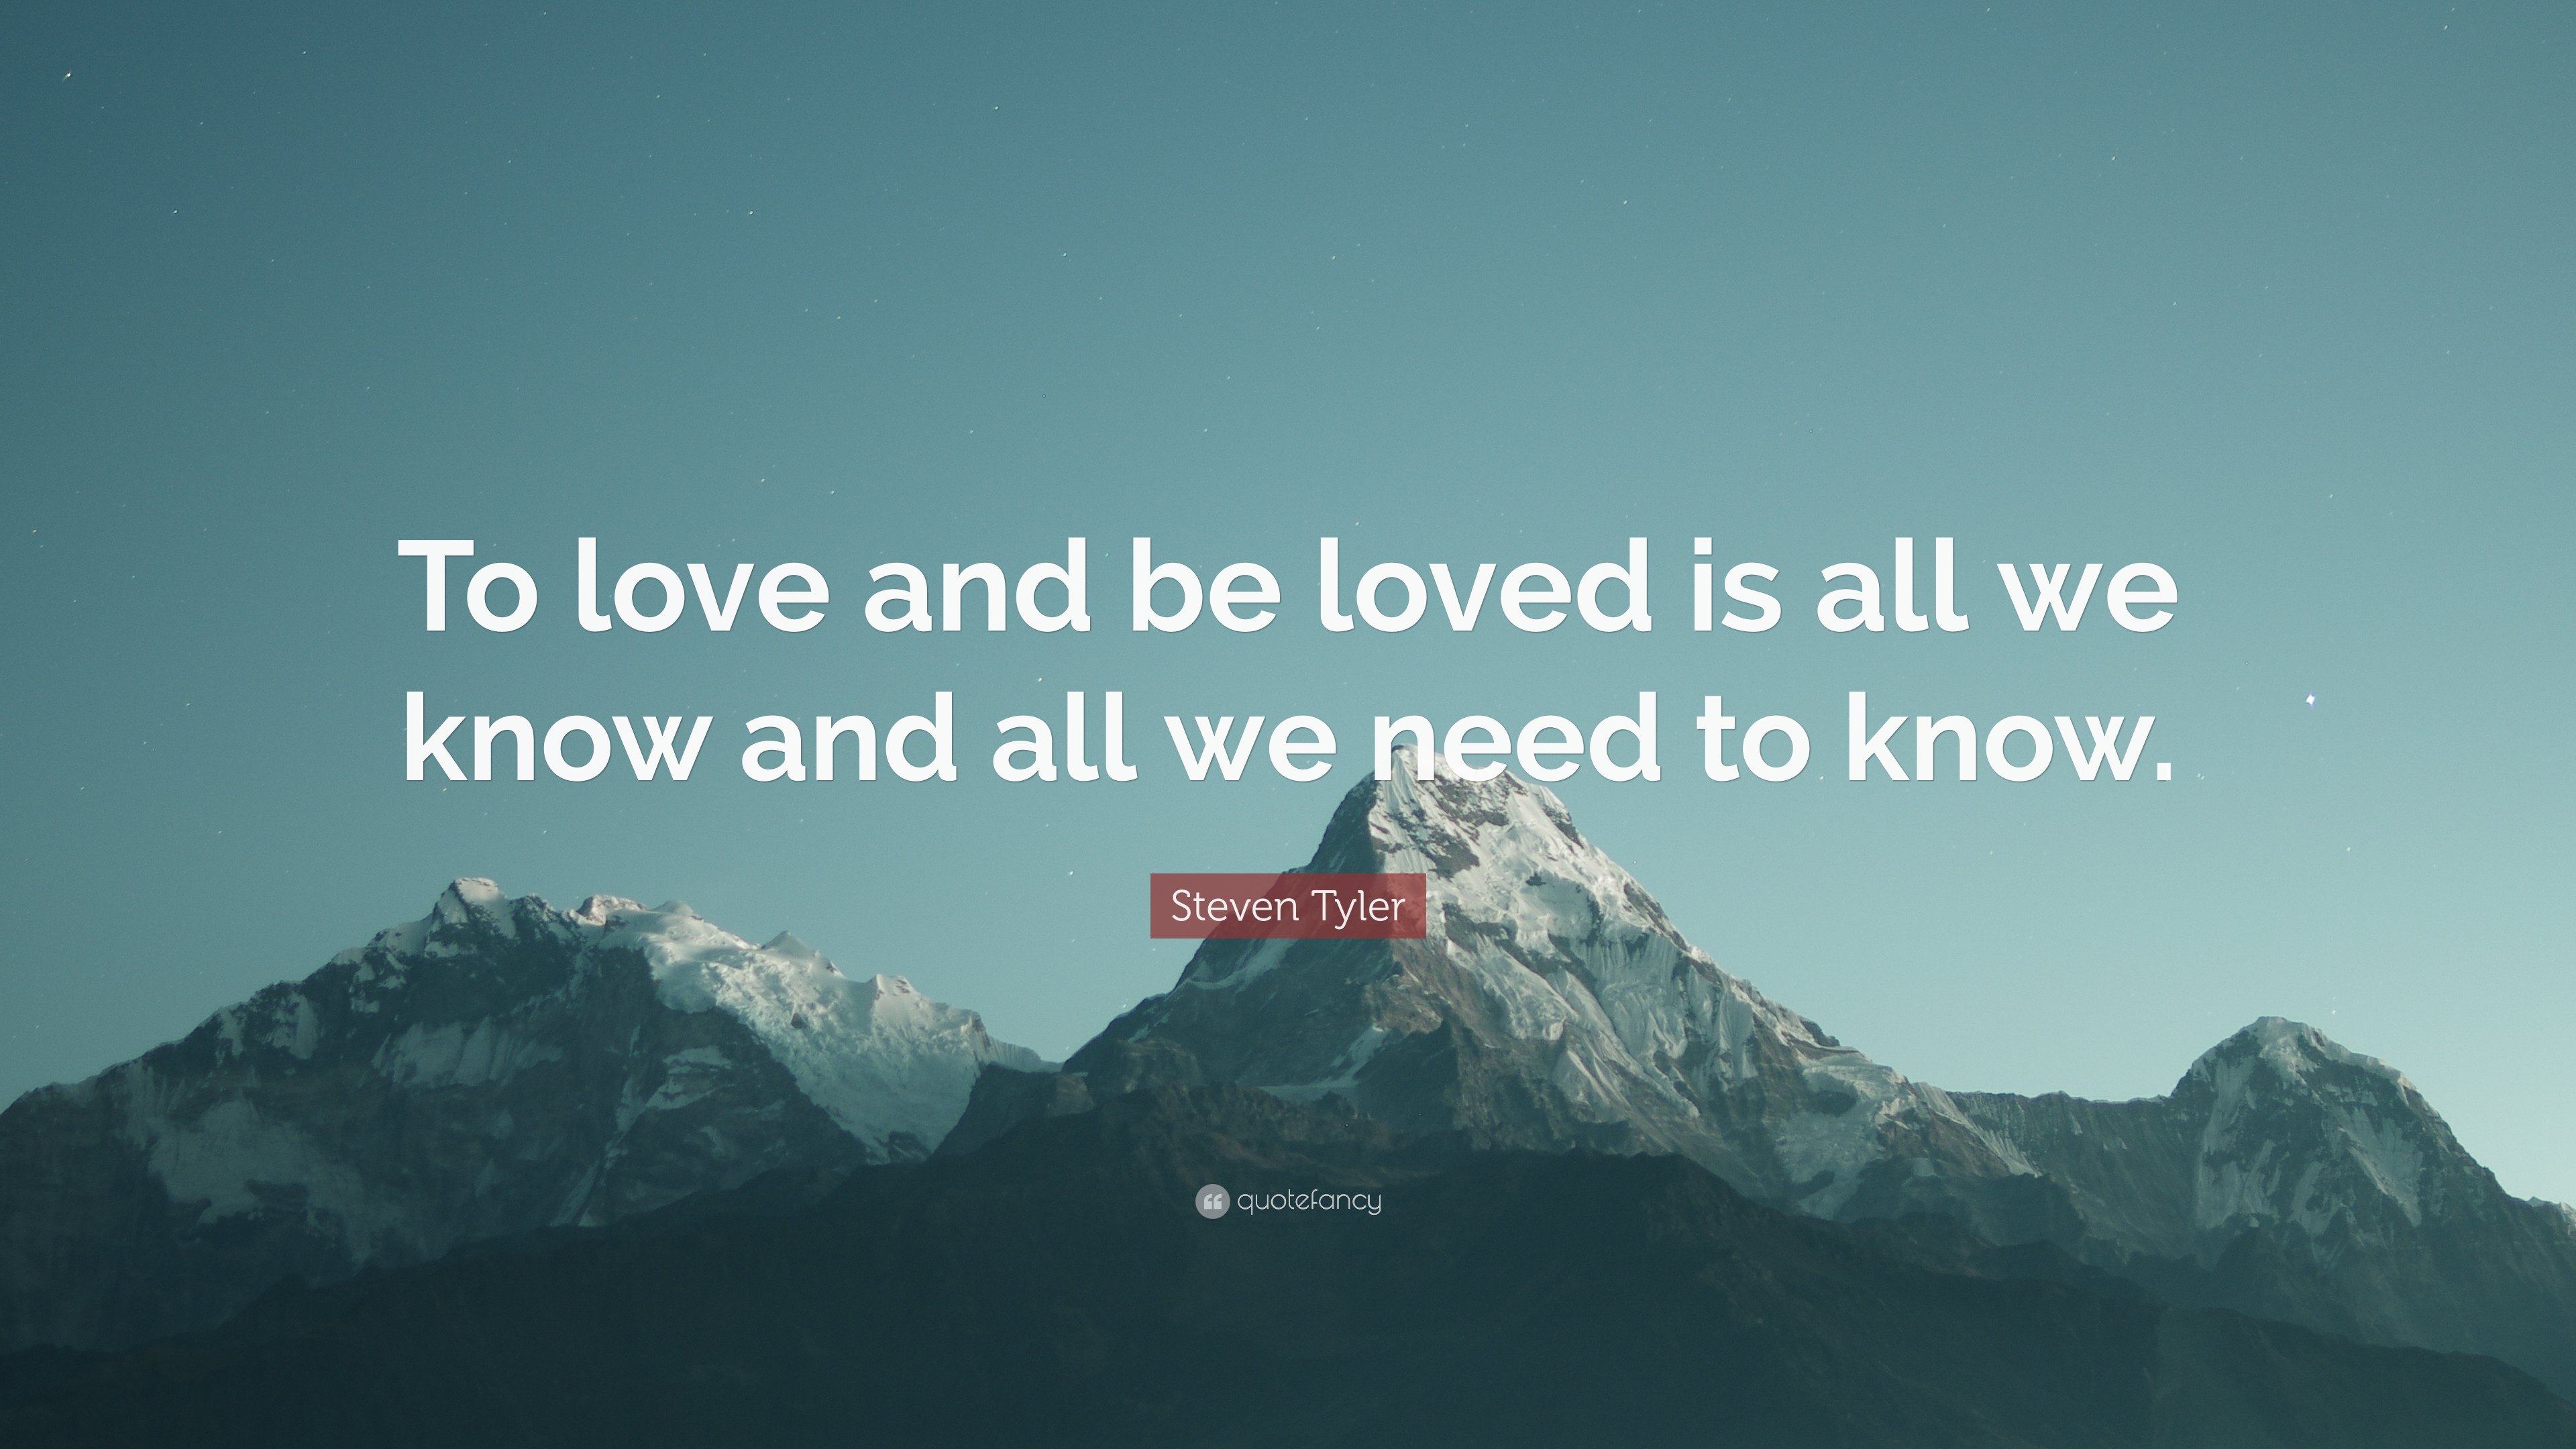 Steven Tyler Quote To Love And Be Loved Is All We Know And All We